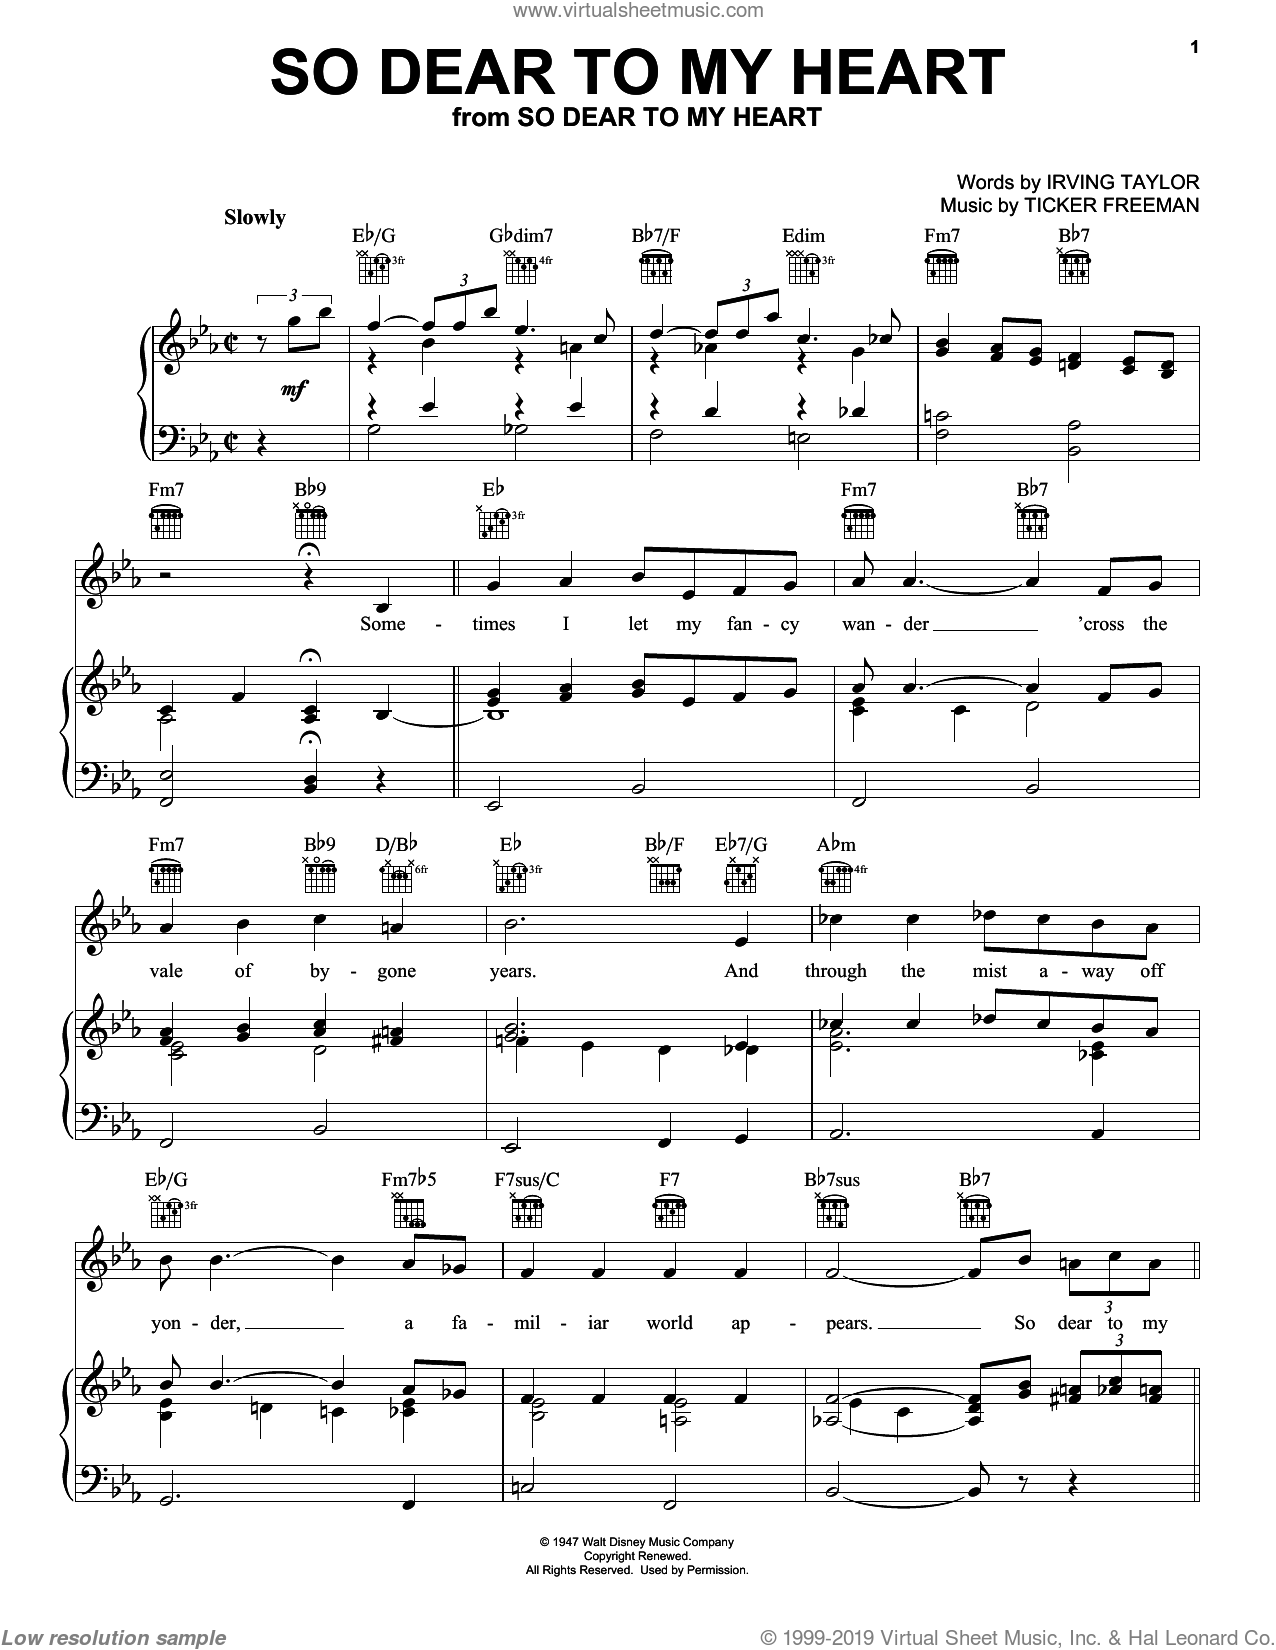 So Dear To My Heart sheet music for voice, piano or guitar by Peggy Lee, Irving Taylor and Ticker Freeman, intermediate skill level